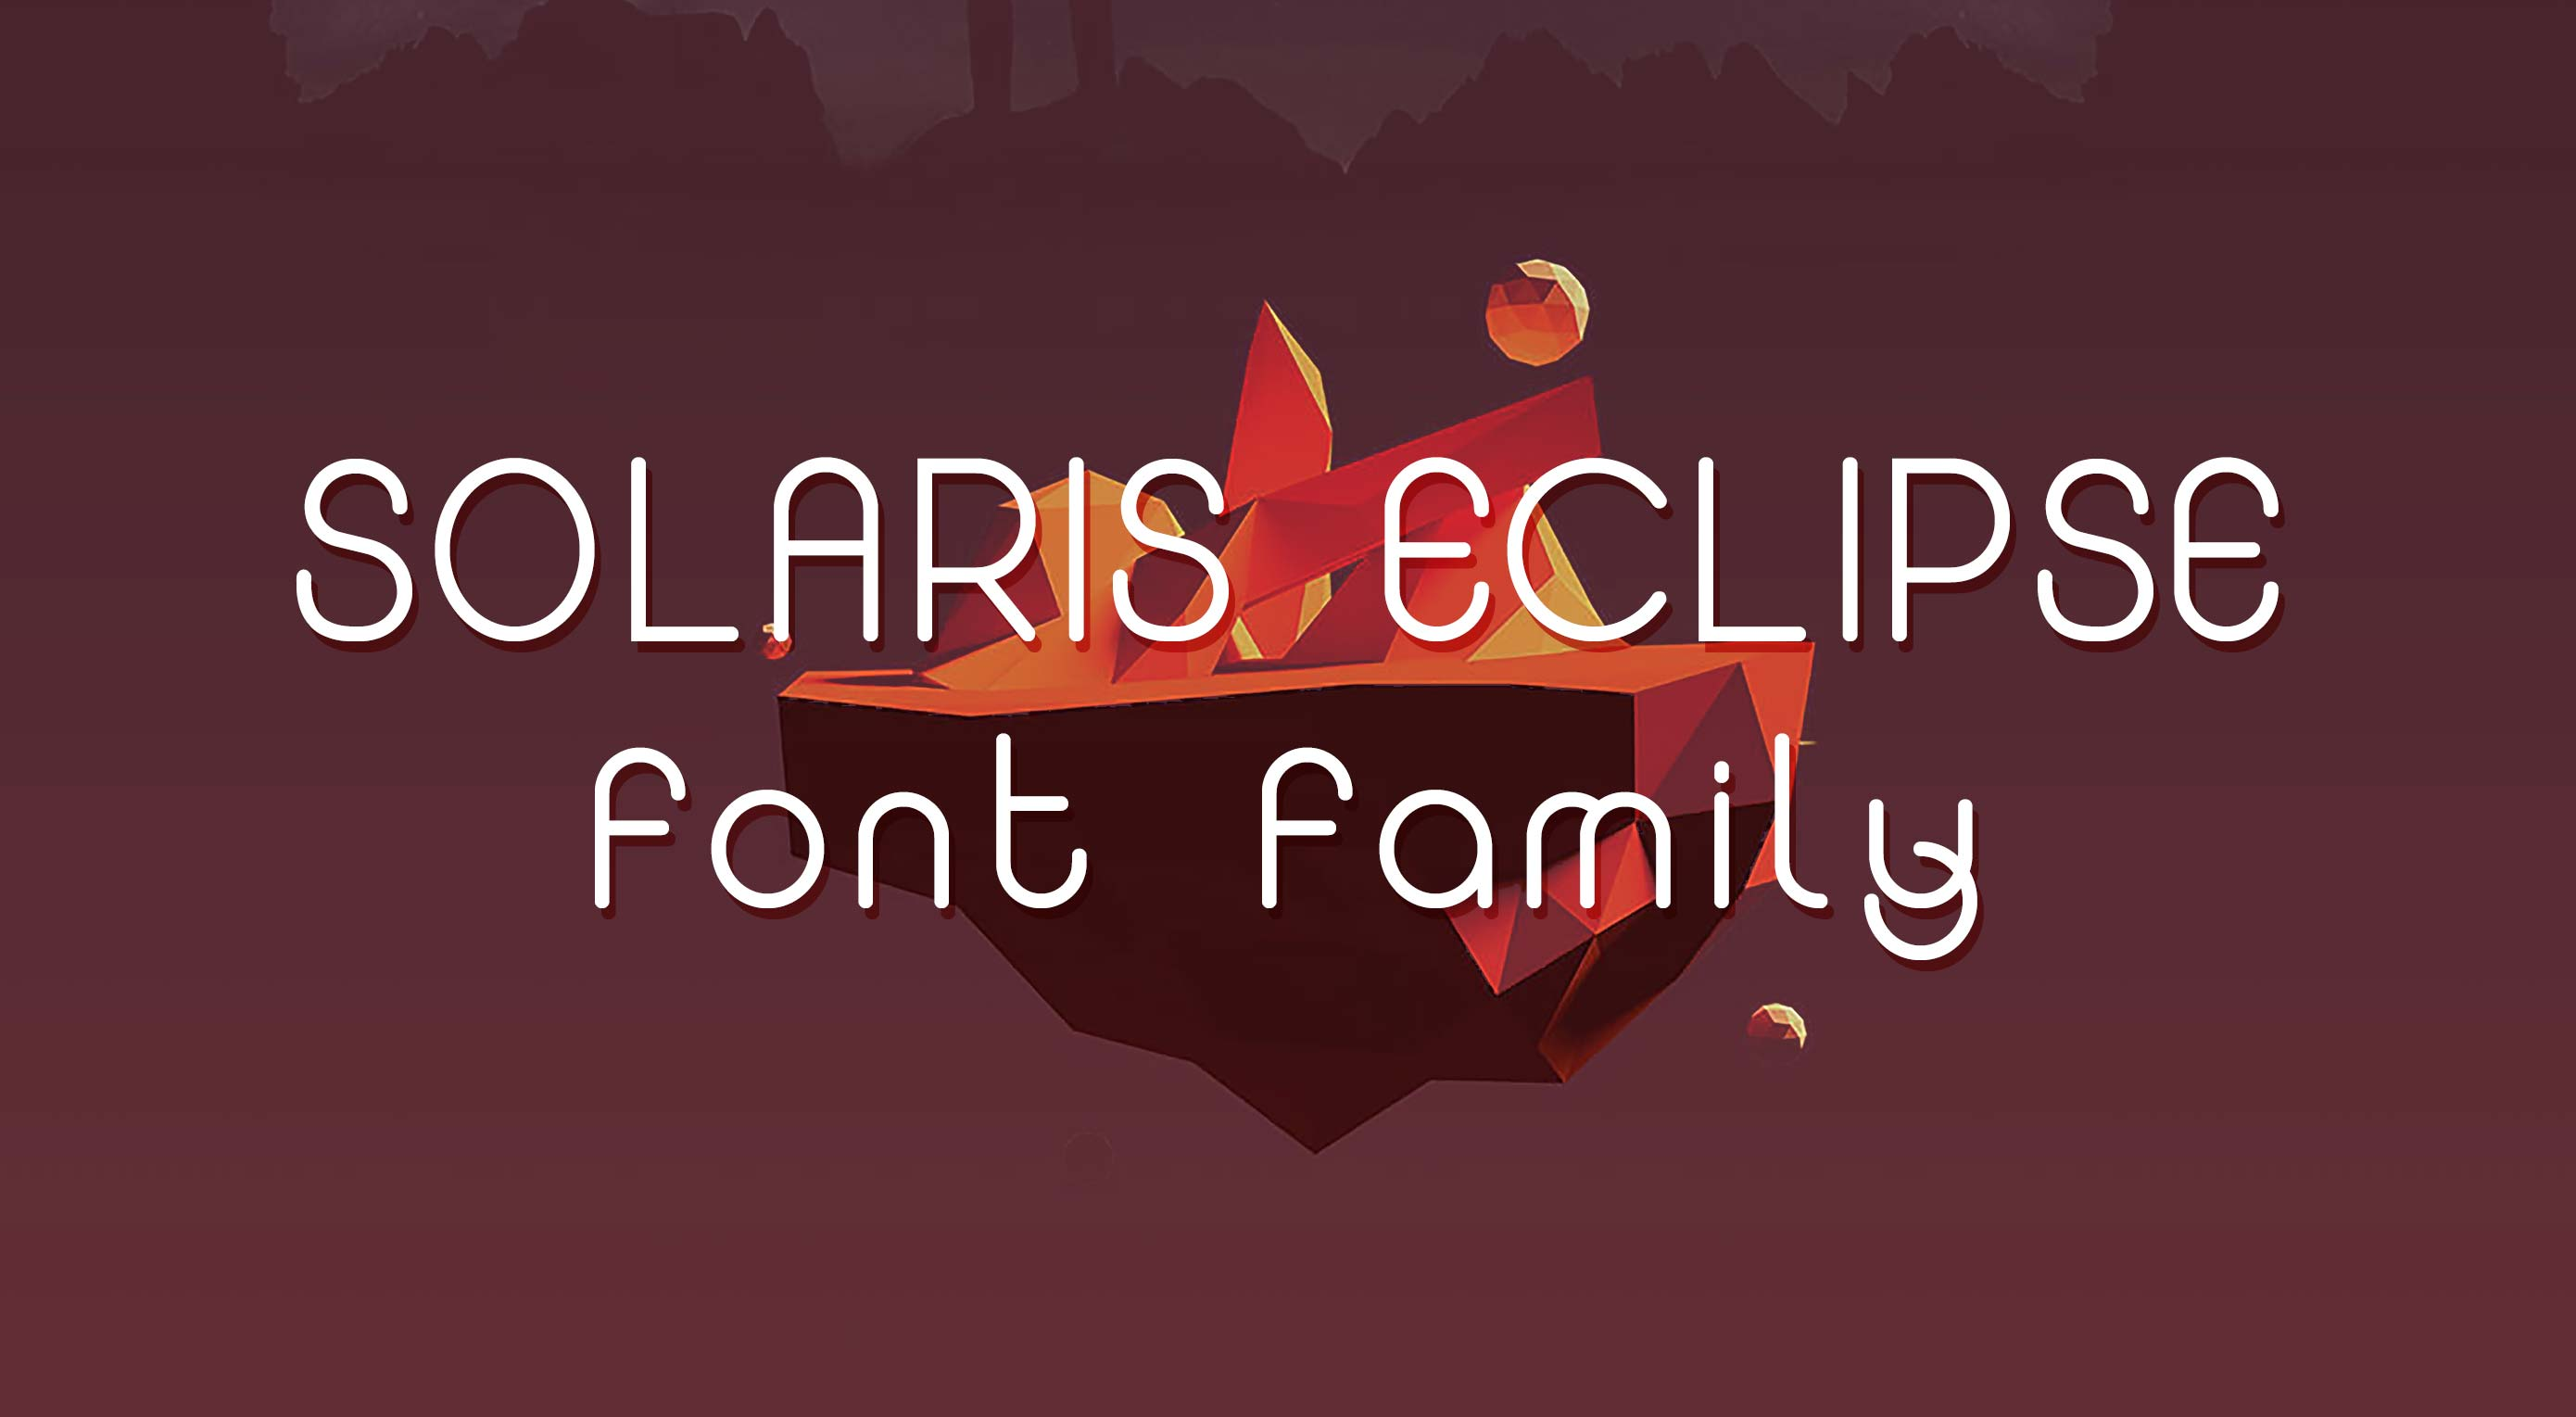 Free download: Solaris Eclipse font family